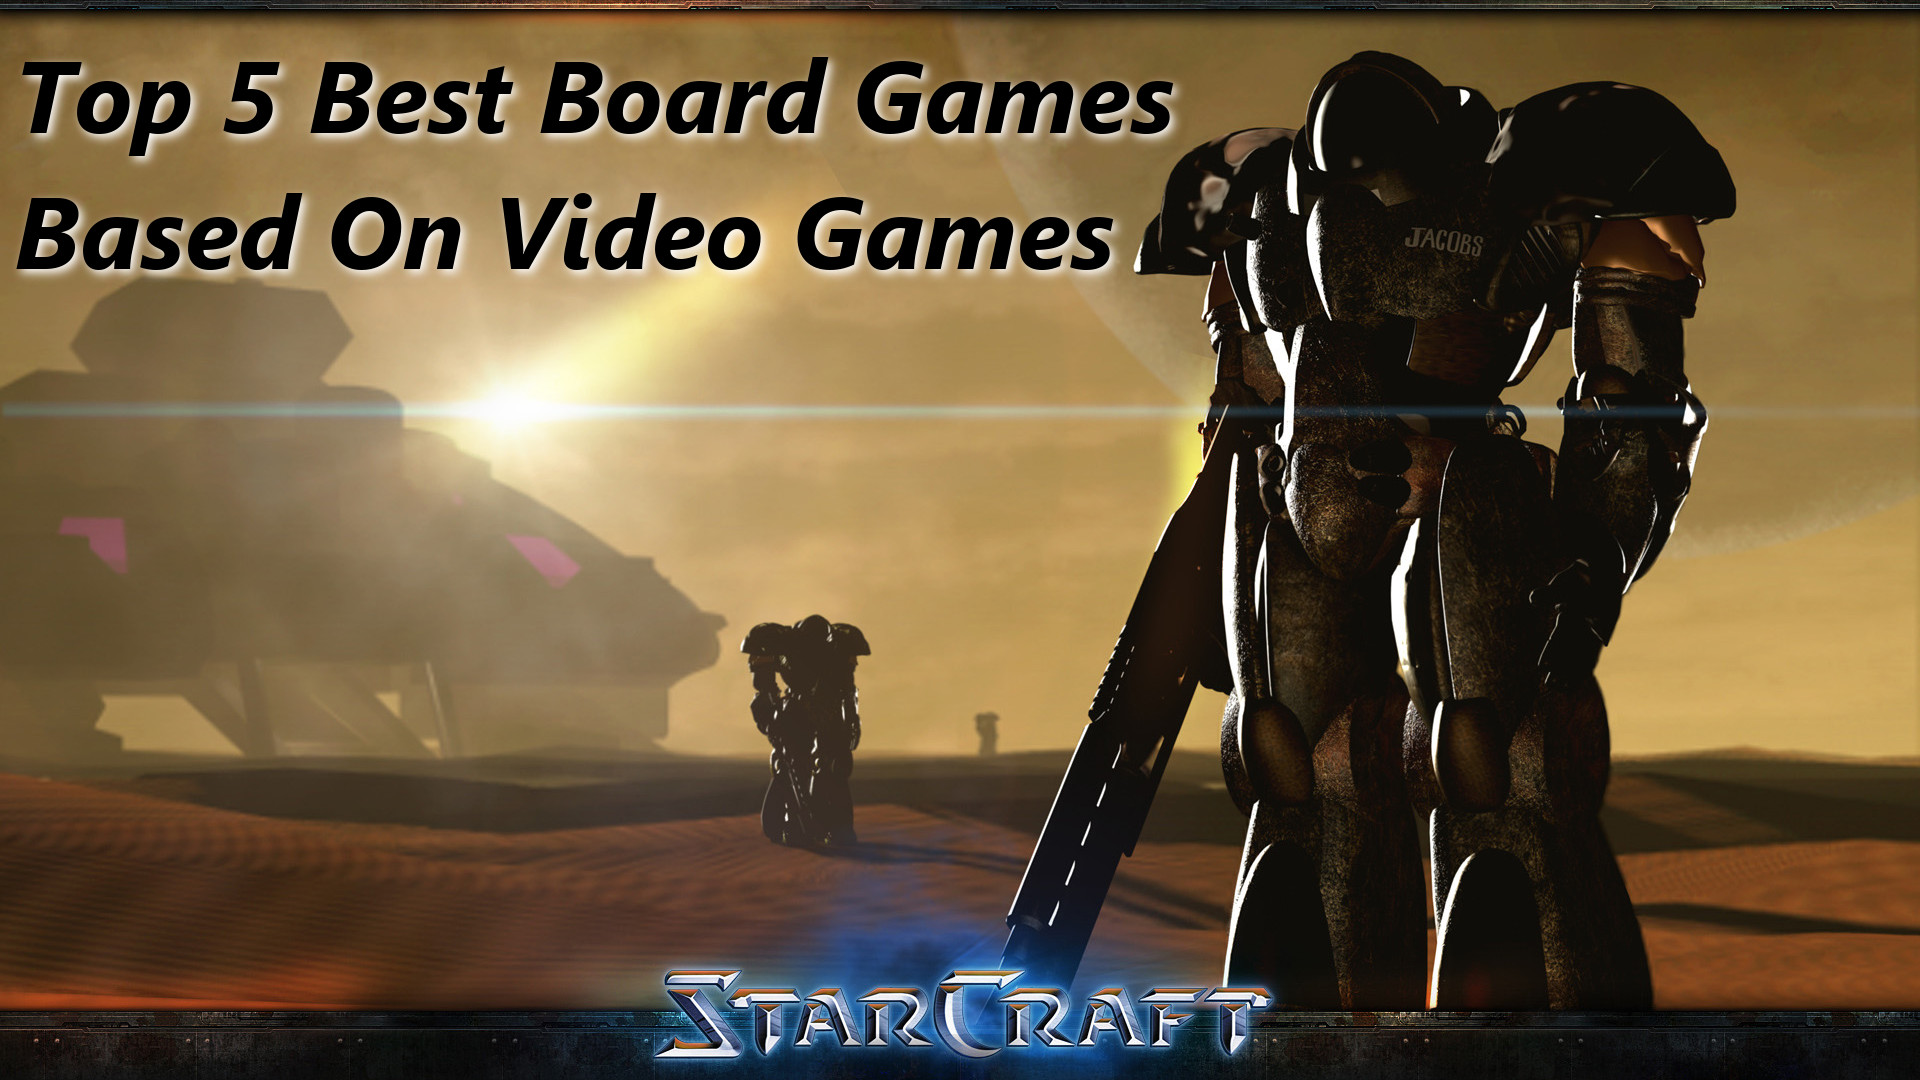 Top 5 Best Board Games Based On Video Games